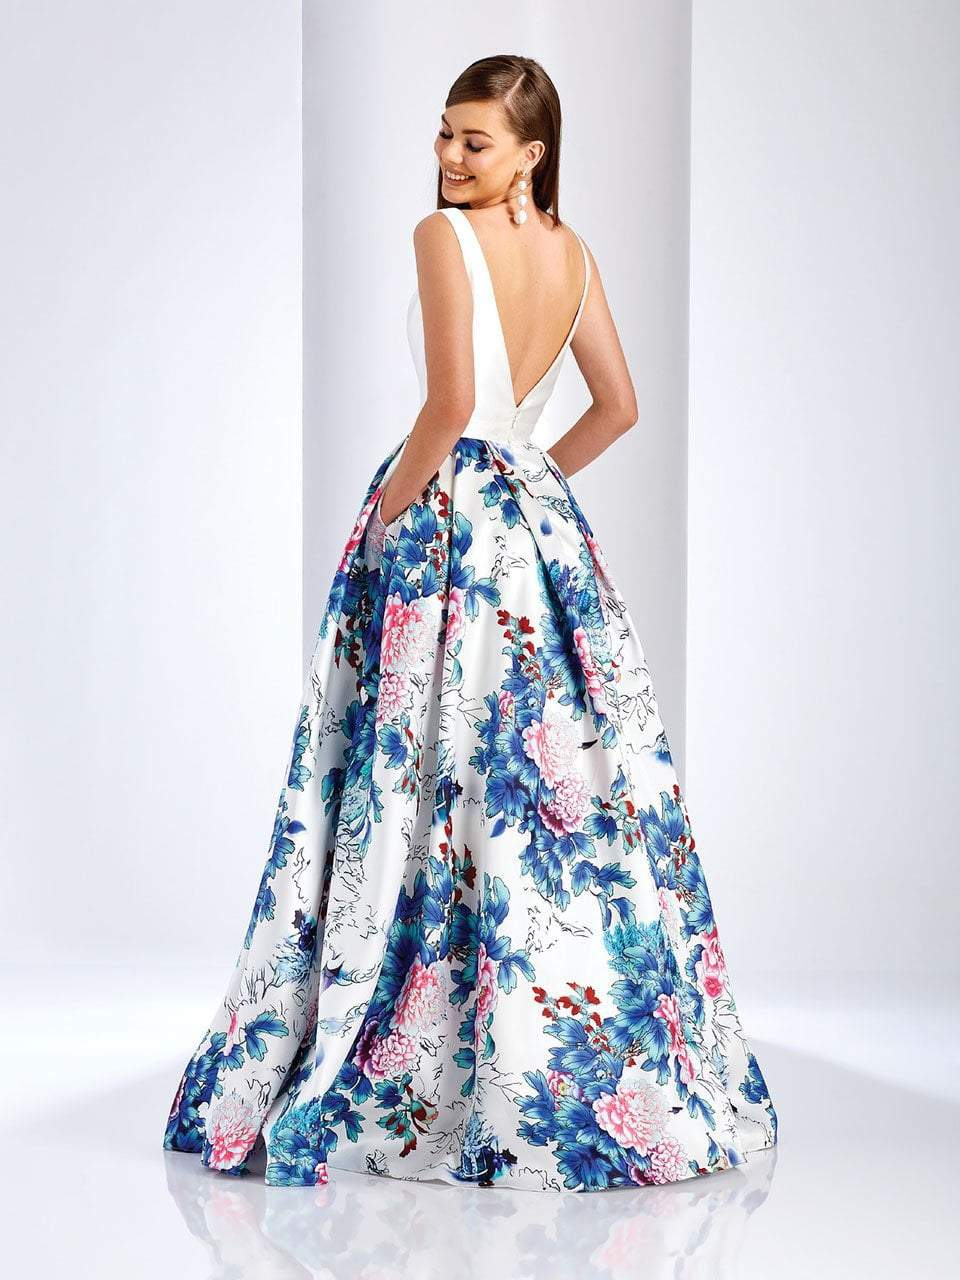 Clarisse - 3538 Deep V-Neck Floral Mikado Evening Gown in White and Print